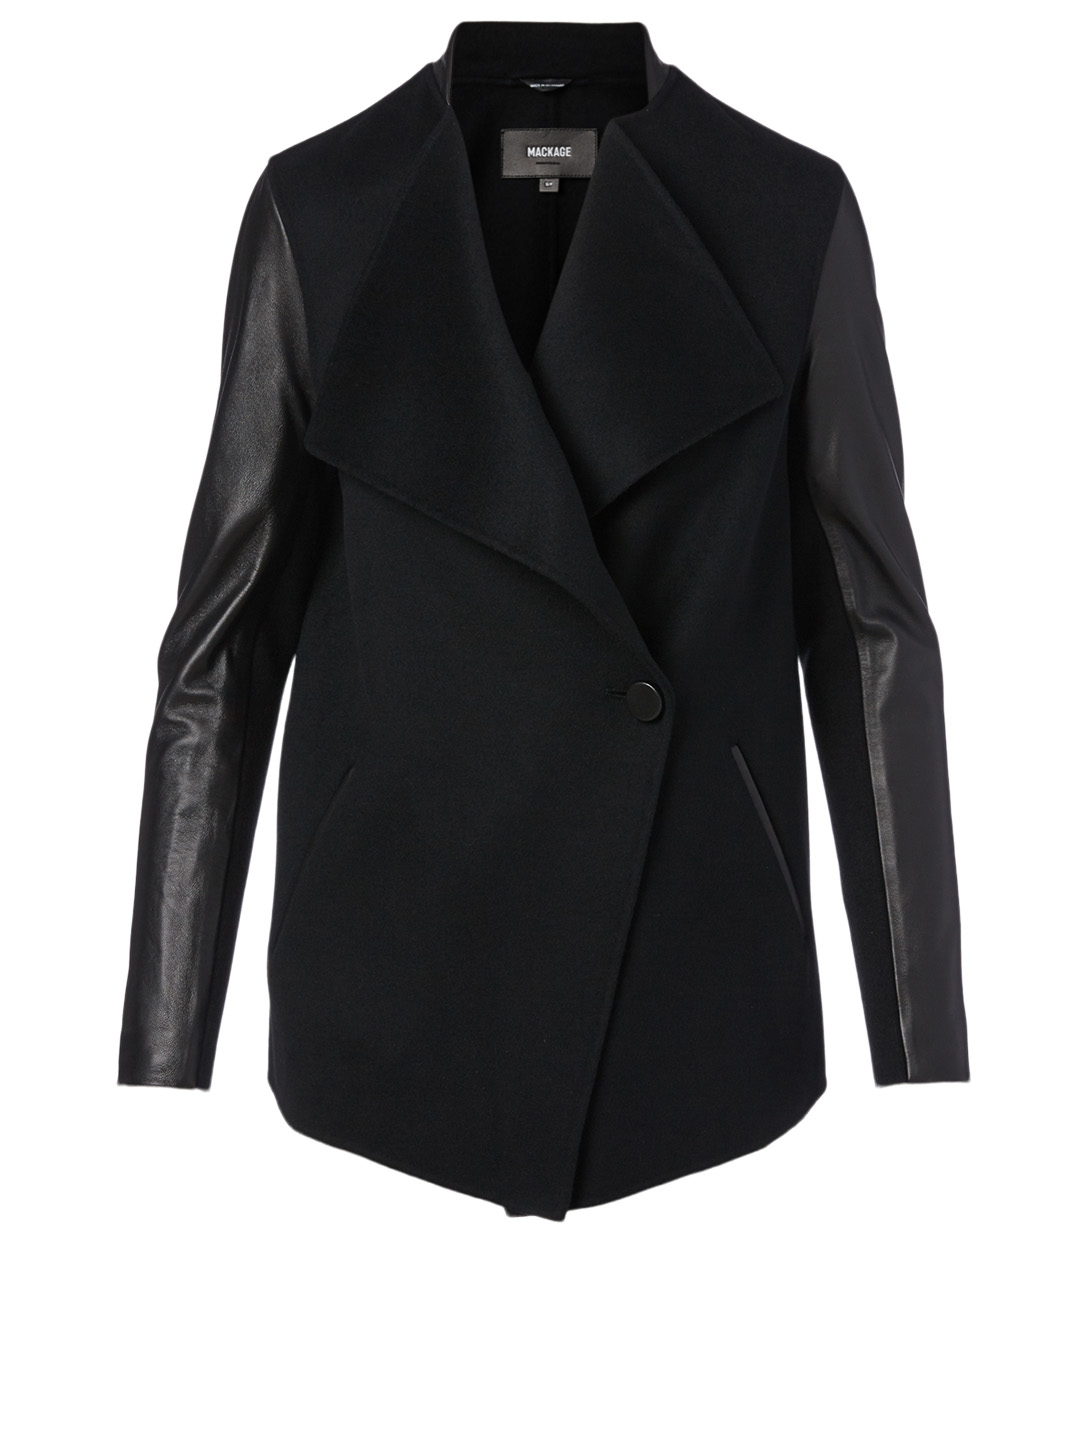 MACKAGE Valla Wool And Leather Coat Women's Black